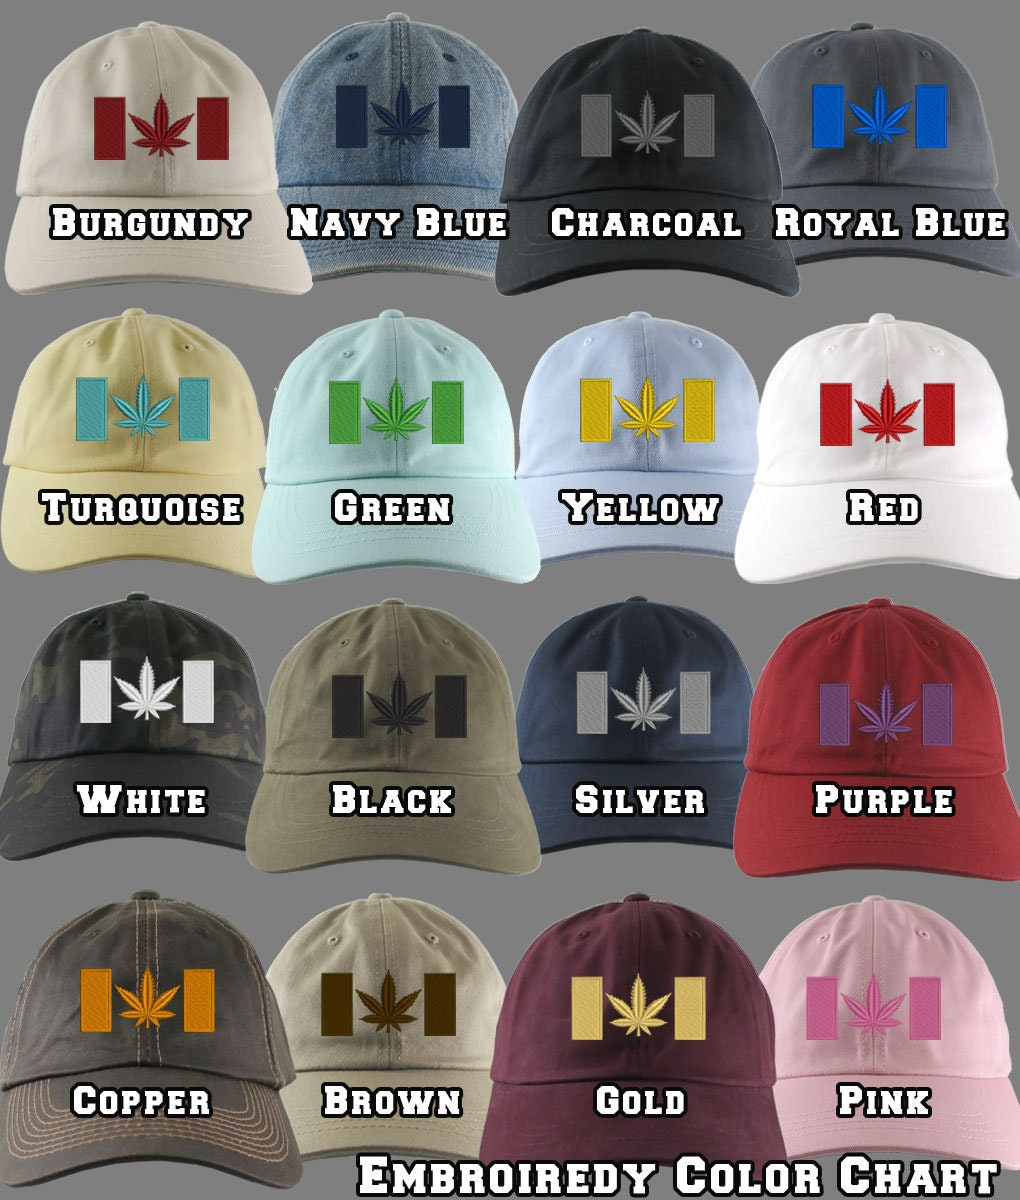 60a37a8d4d0 Canadian Cannabis Flag Your Color Choice Embroidery Your Selection of an  Adjustable Unstructured Baseball Cap Dad Hat Style Canada + Option